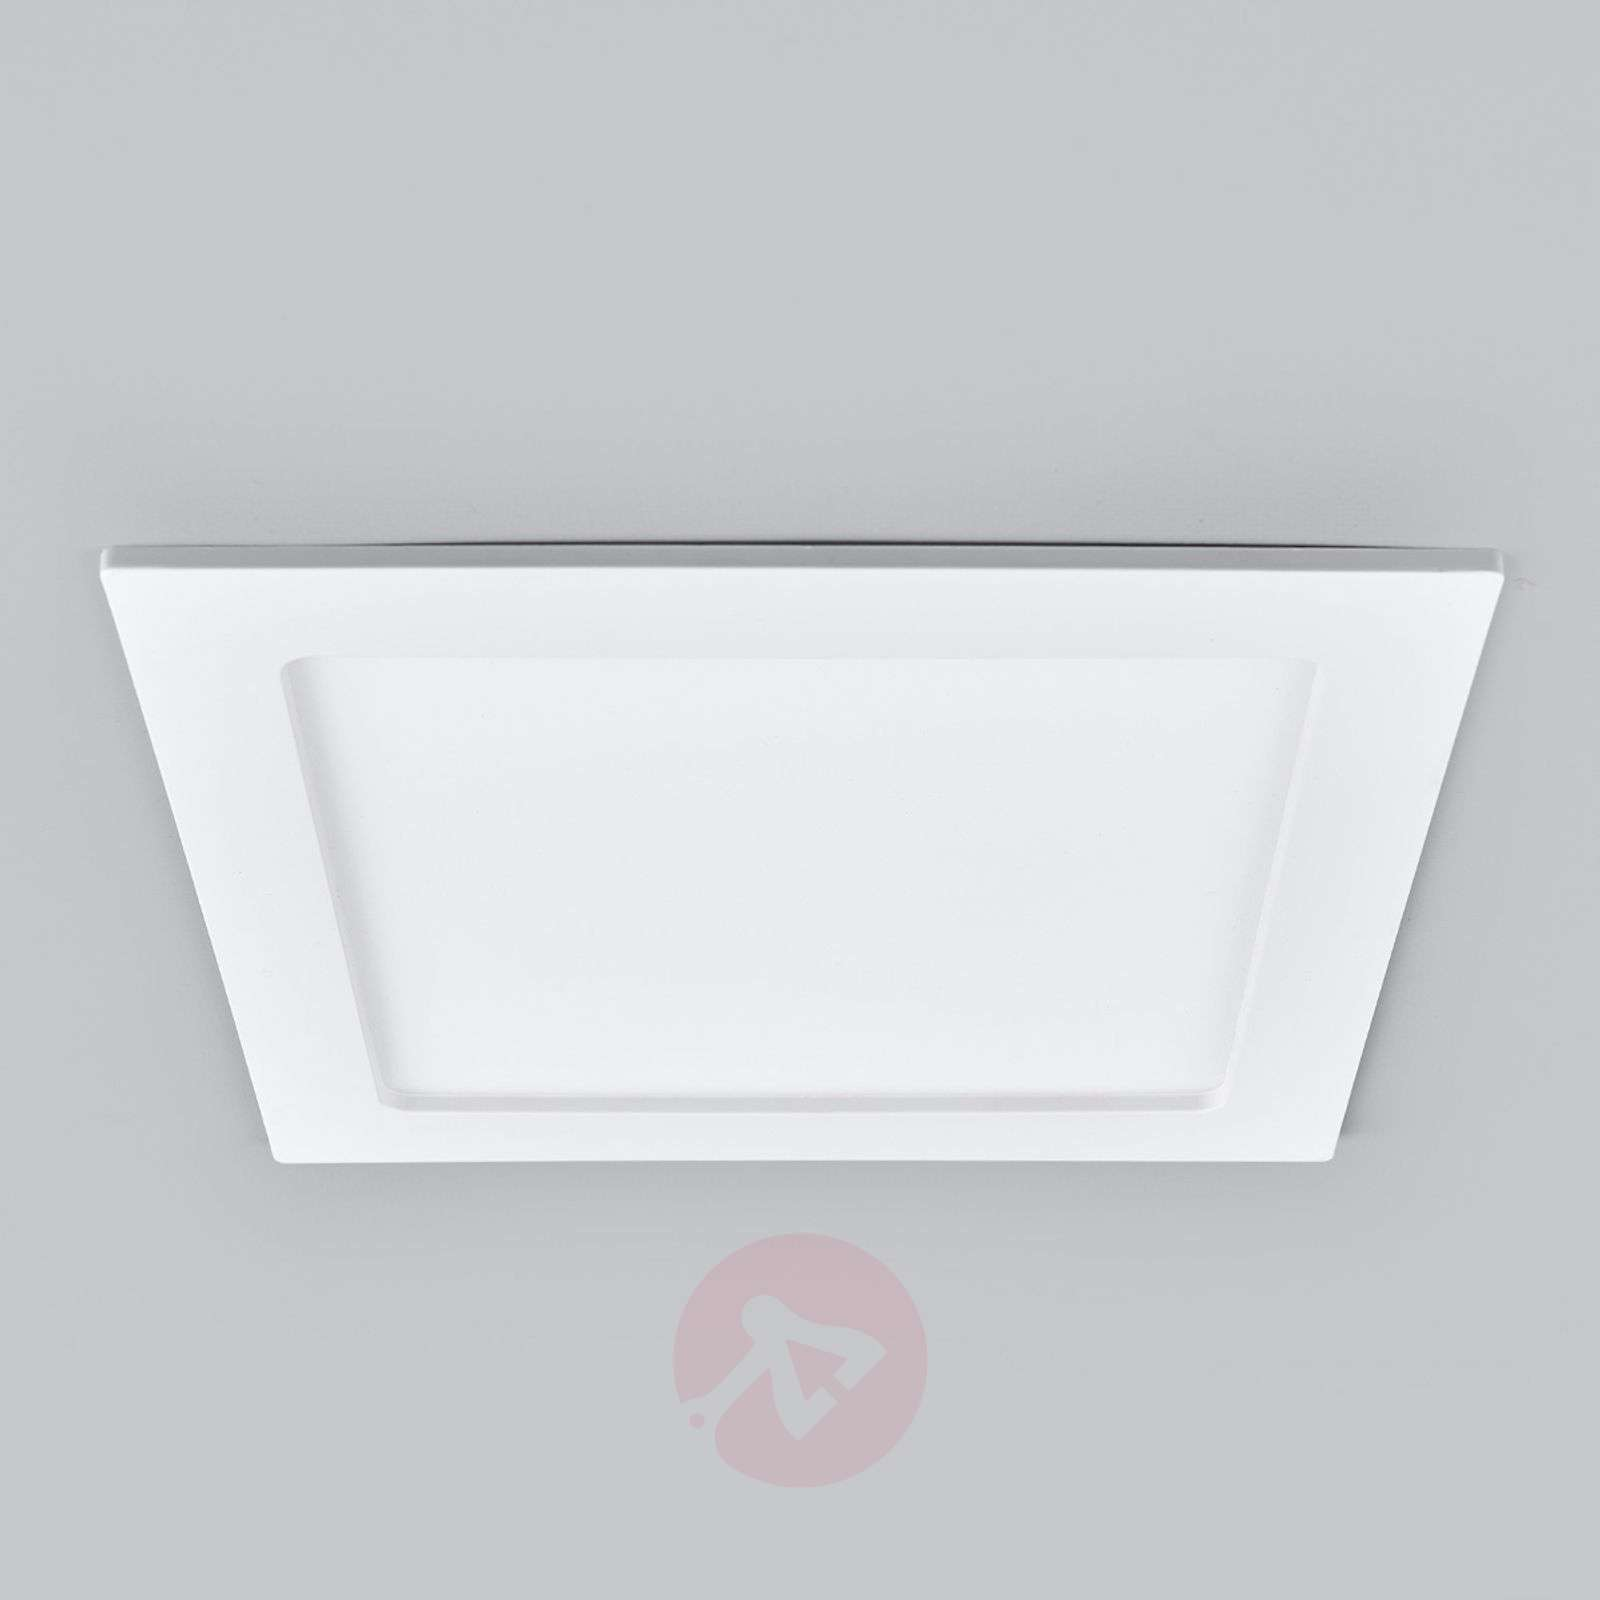 Downlight LED Feva per bagni, IP44, 16W-9978018-020